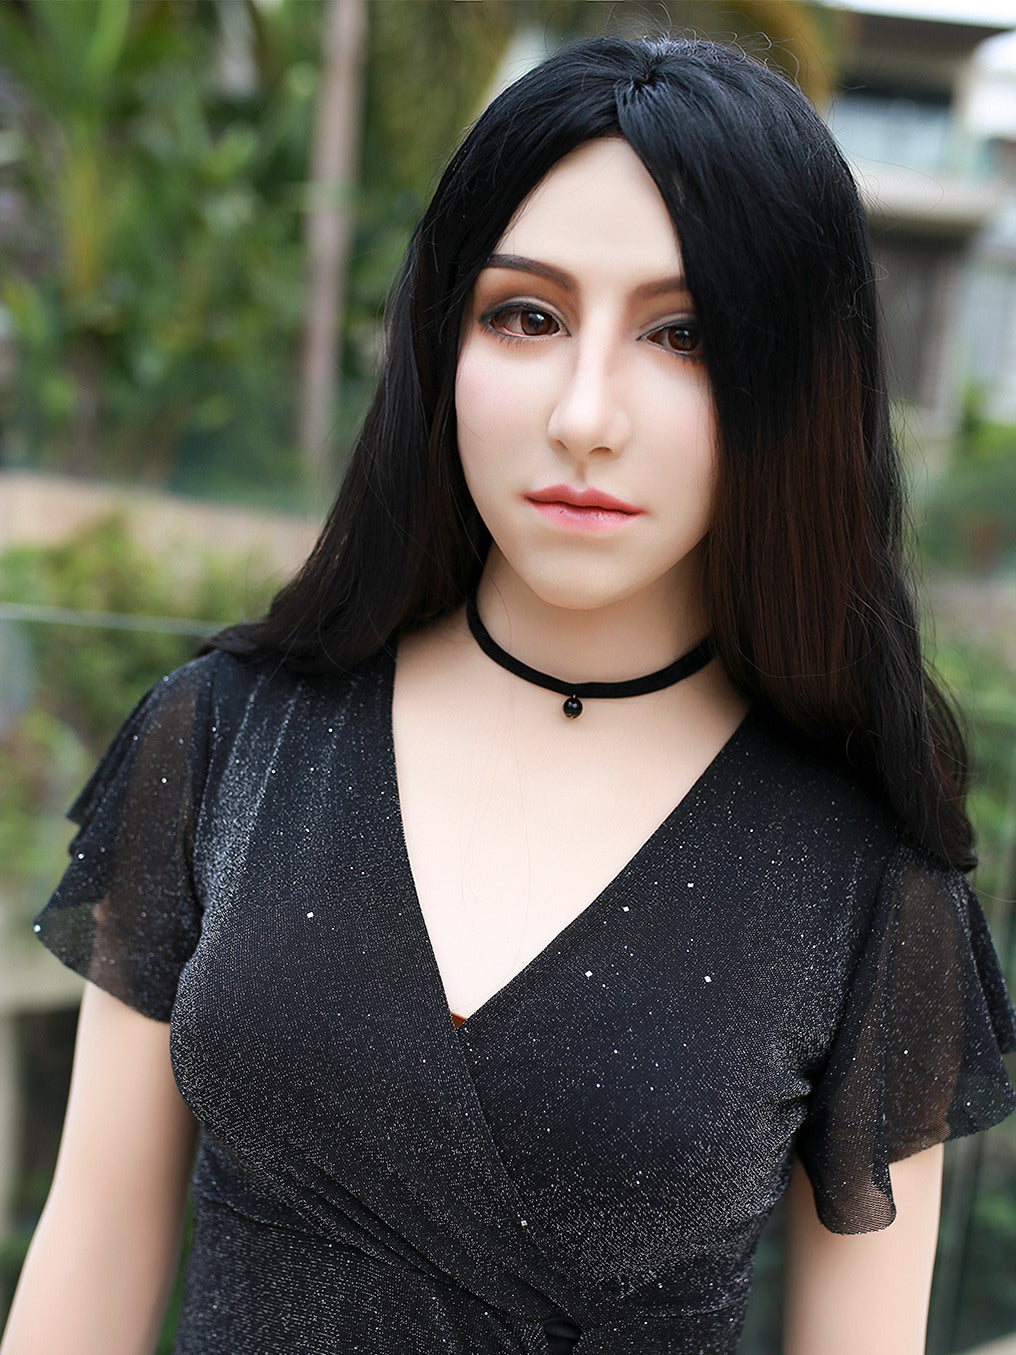 Full head Helen female mask Pull-Over Hood Crossdress Cosplay for TG CD Dragqueen Ladyboy